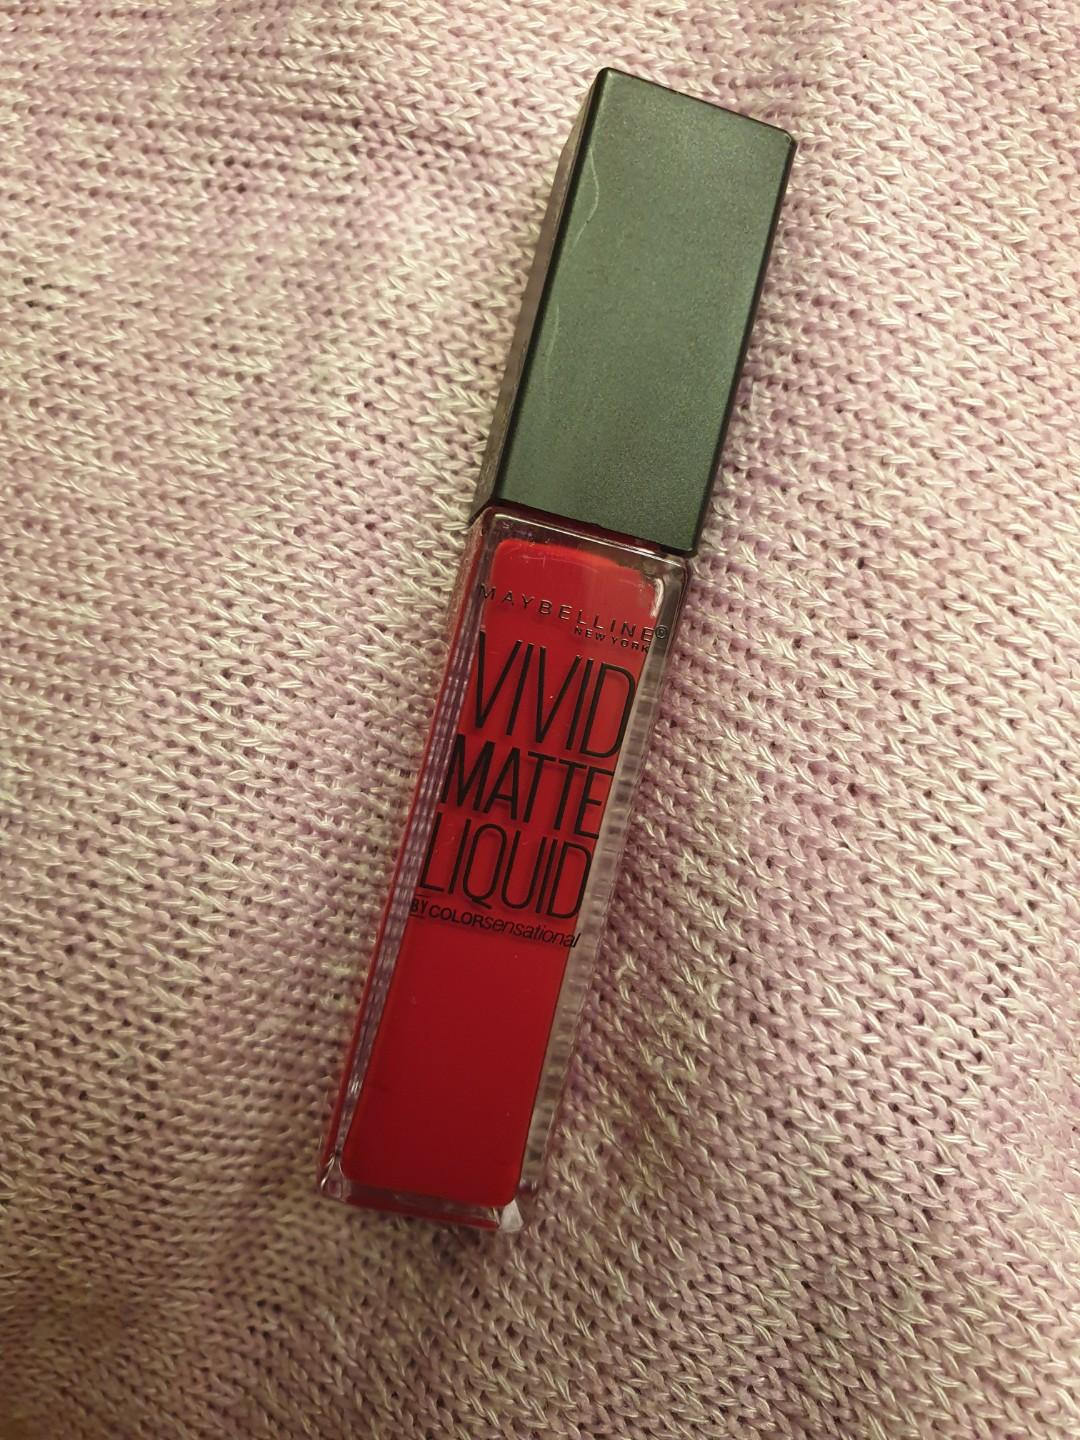 Maybelline Vivid Matte Liquid in Rebel Red